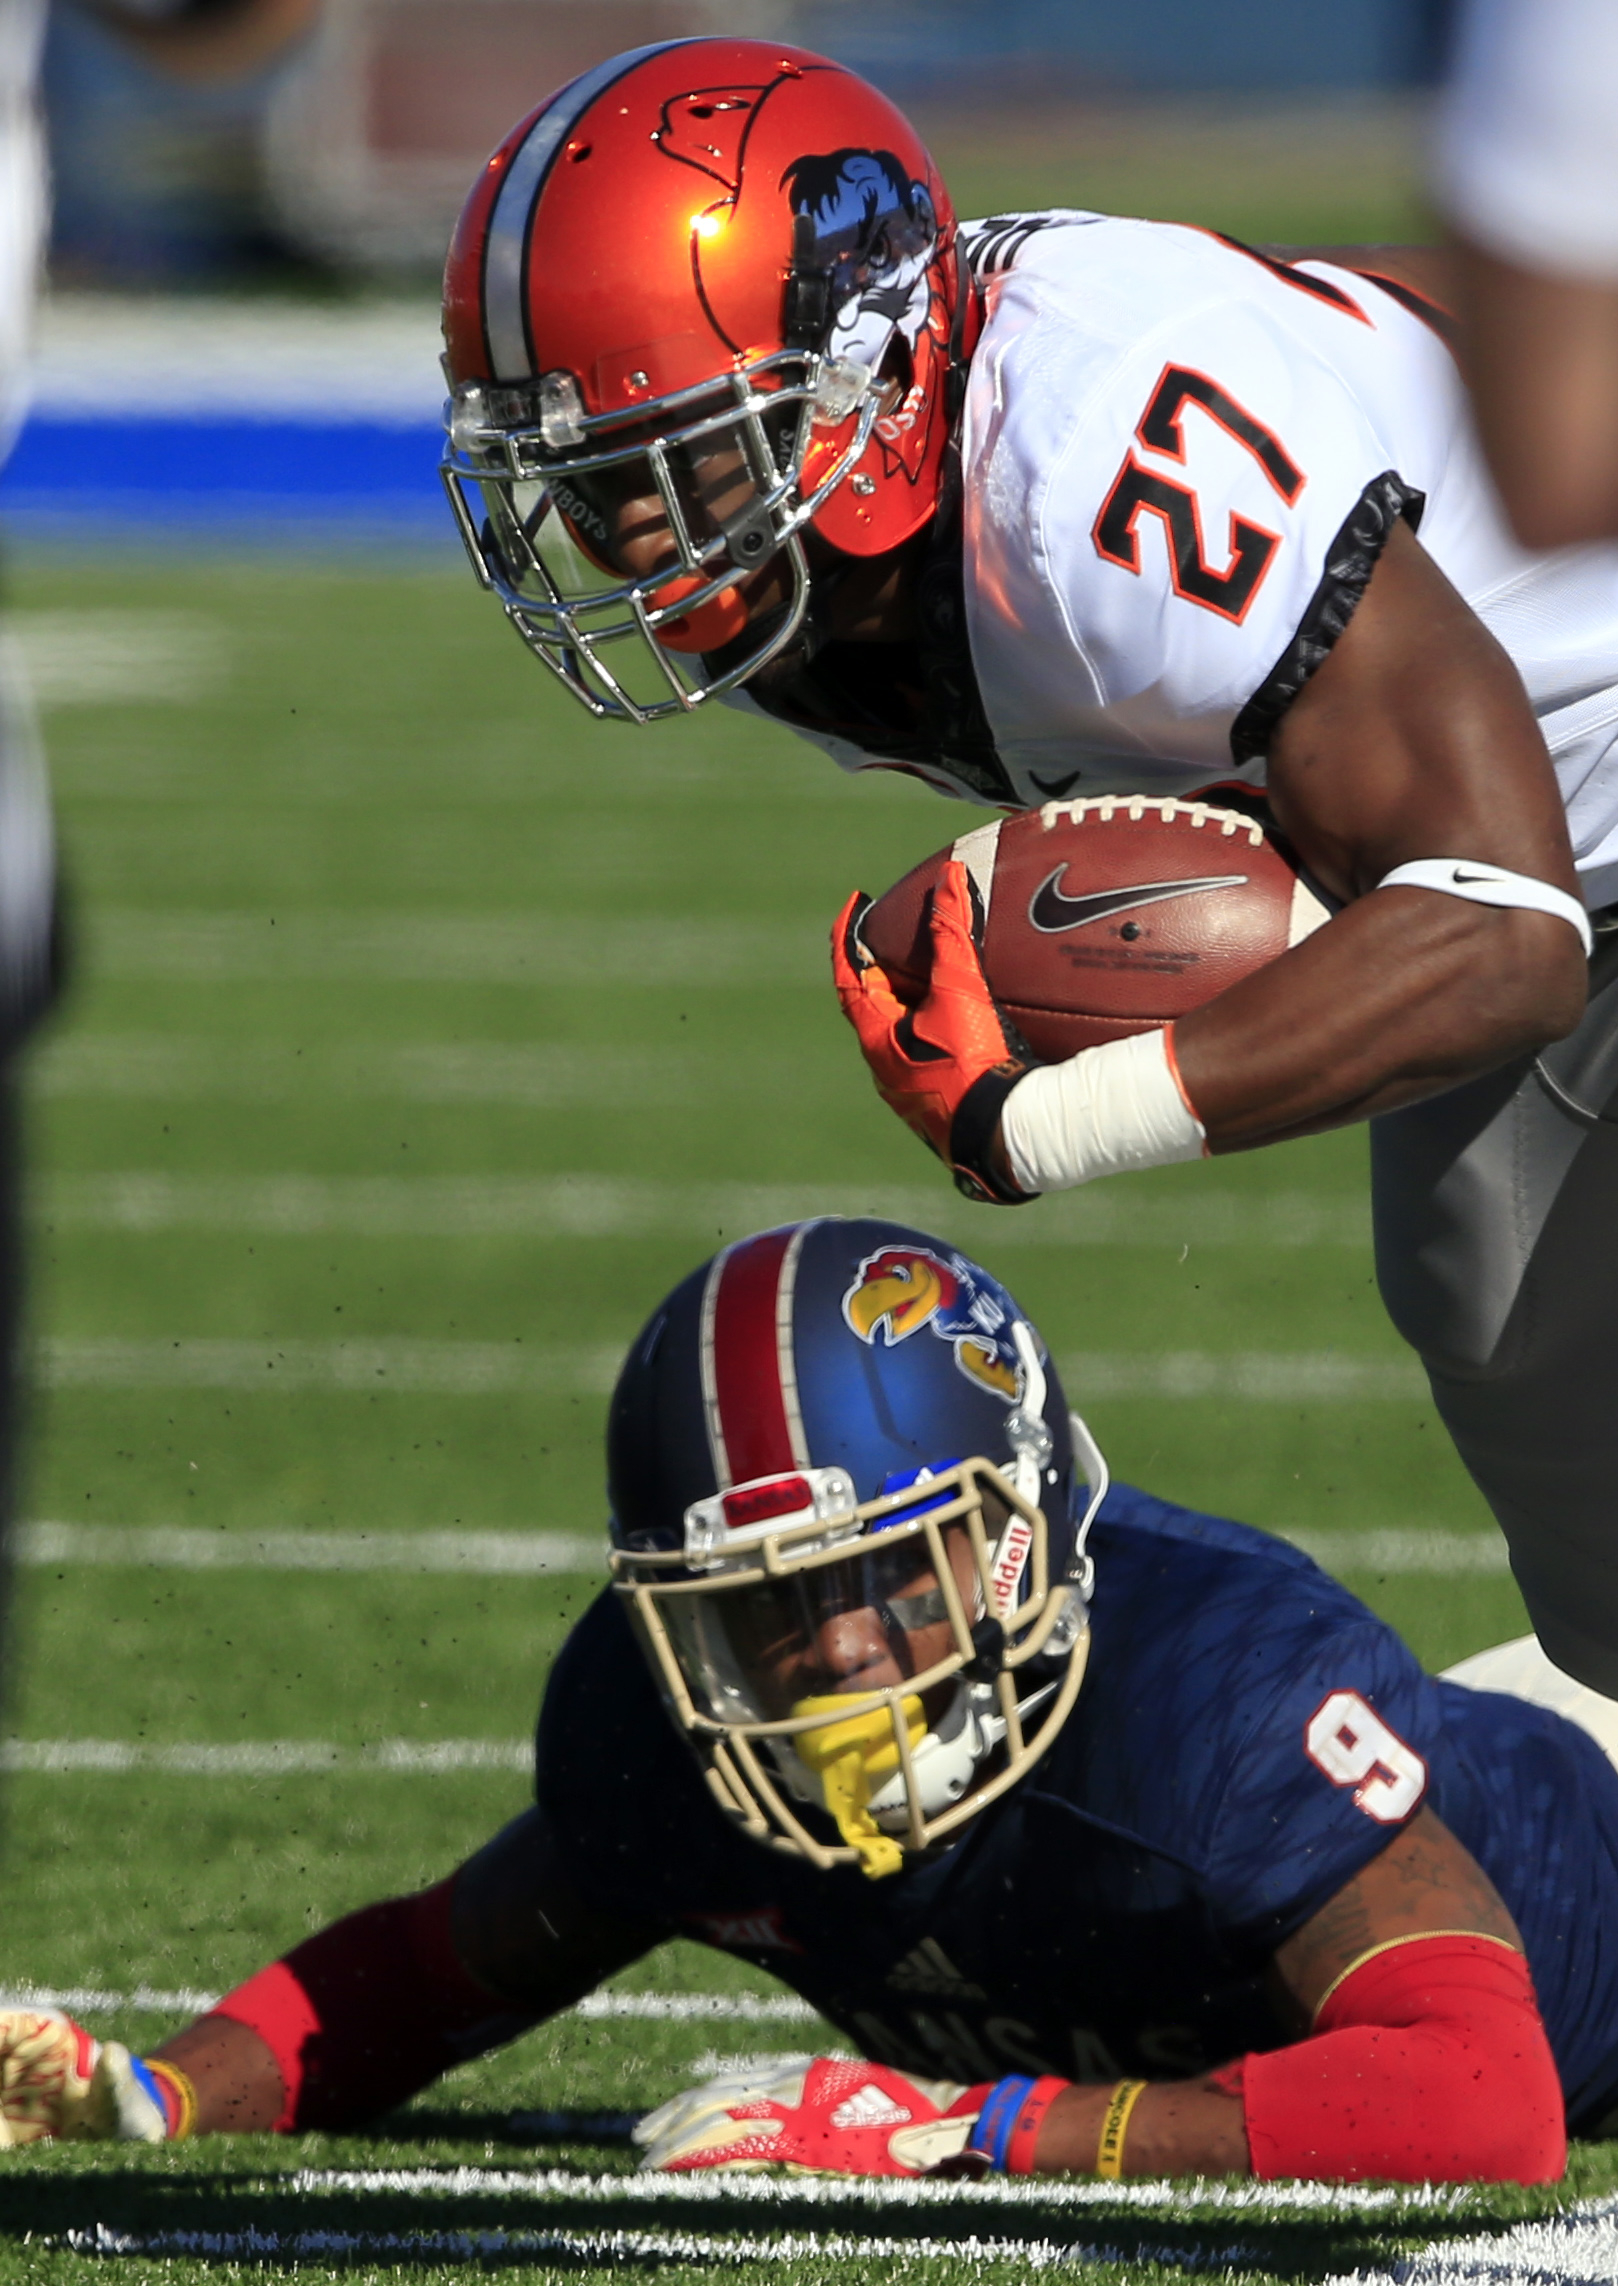 Oklahoma State running back Justice Hill (27) is forced out of bounds by Kansas safety Fish Smithson (9) during the first half of an NCAA college football game in Lawrence, Kan., Saturday, Oct. 22, 2016. (AP Photo/Orlin Wagner)